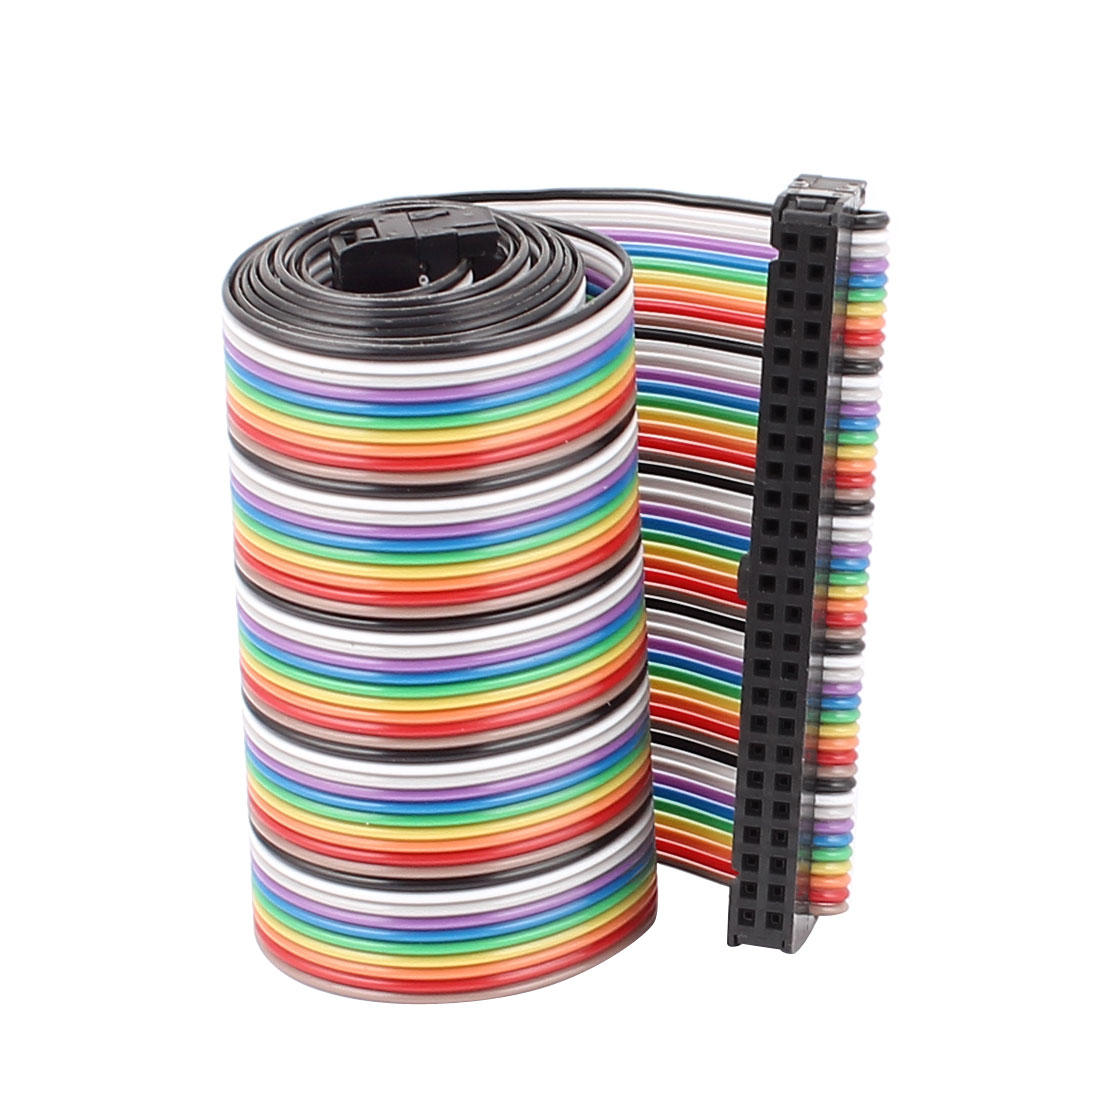 66cm Length 2.54mm Pitch 50P 50 Way F/F Rainbow IDC Flat Ribbon Cable Connector